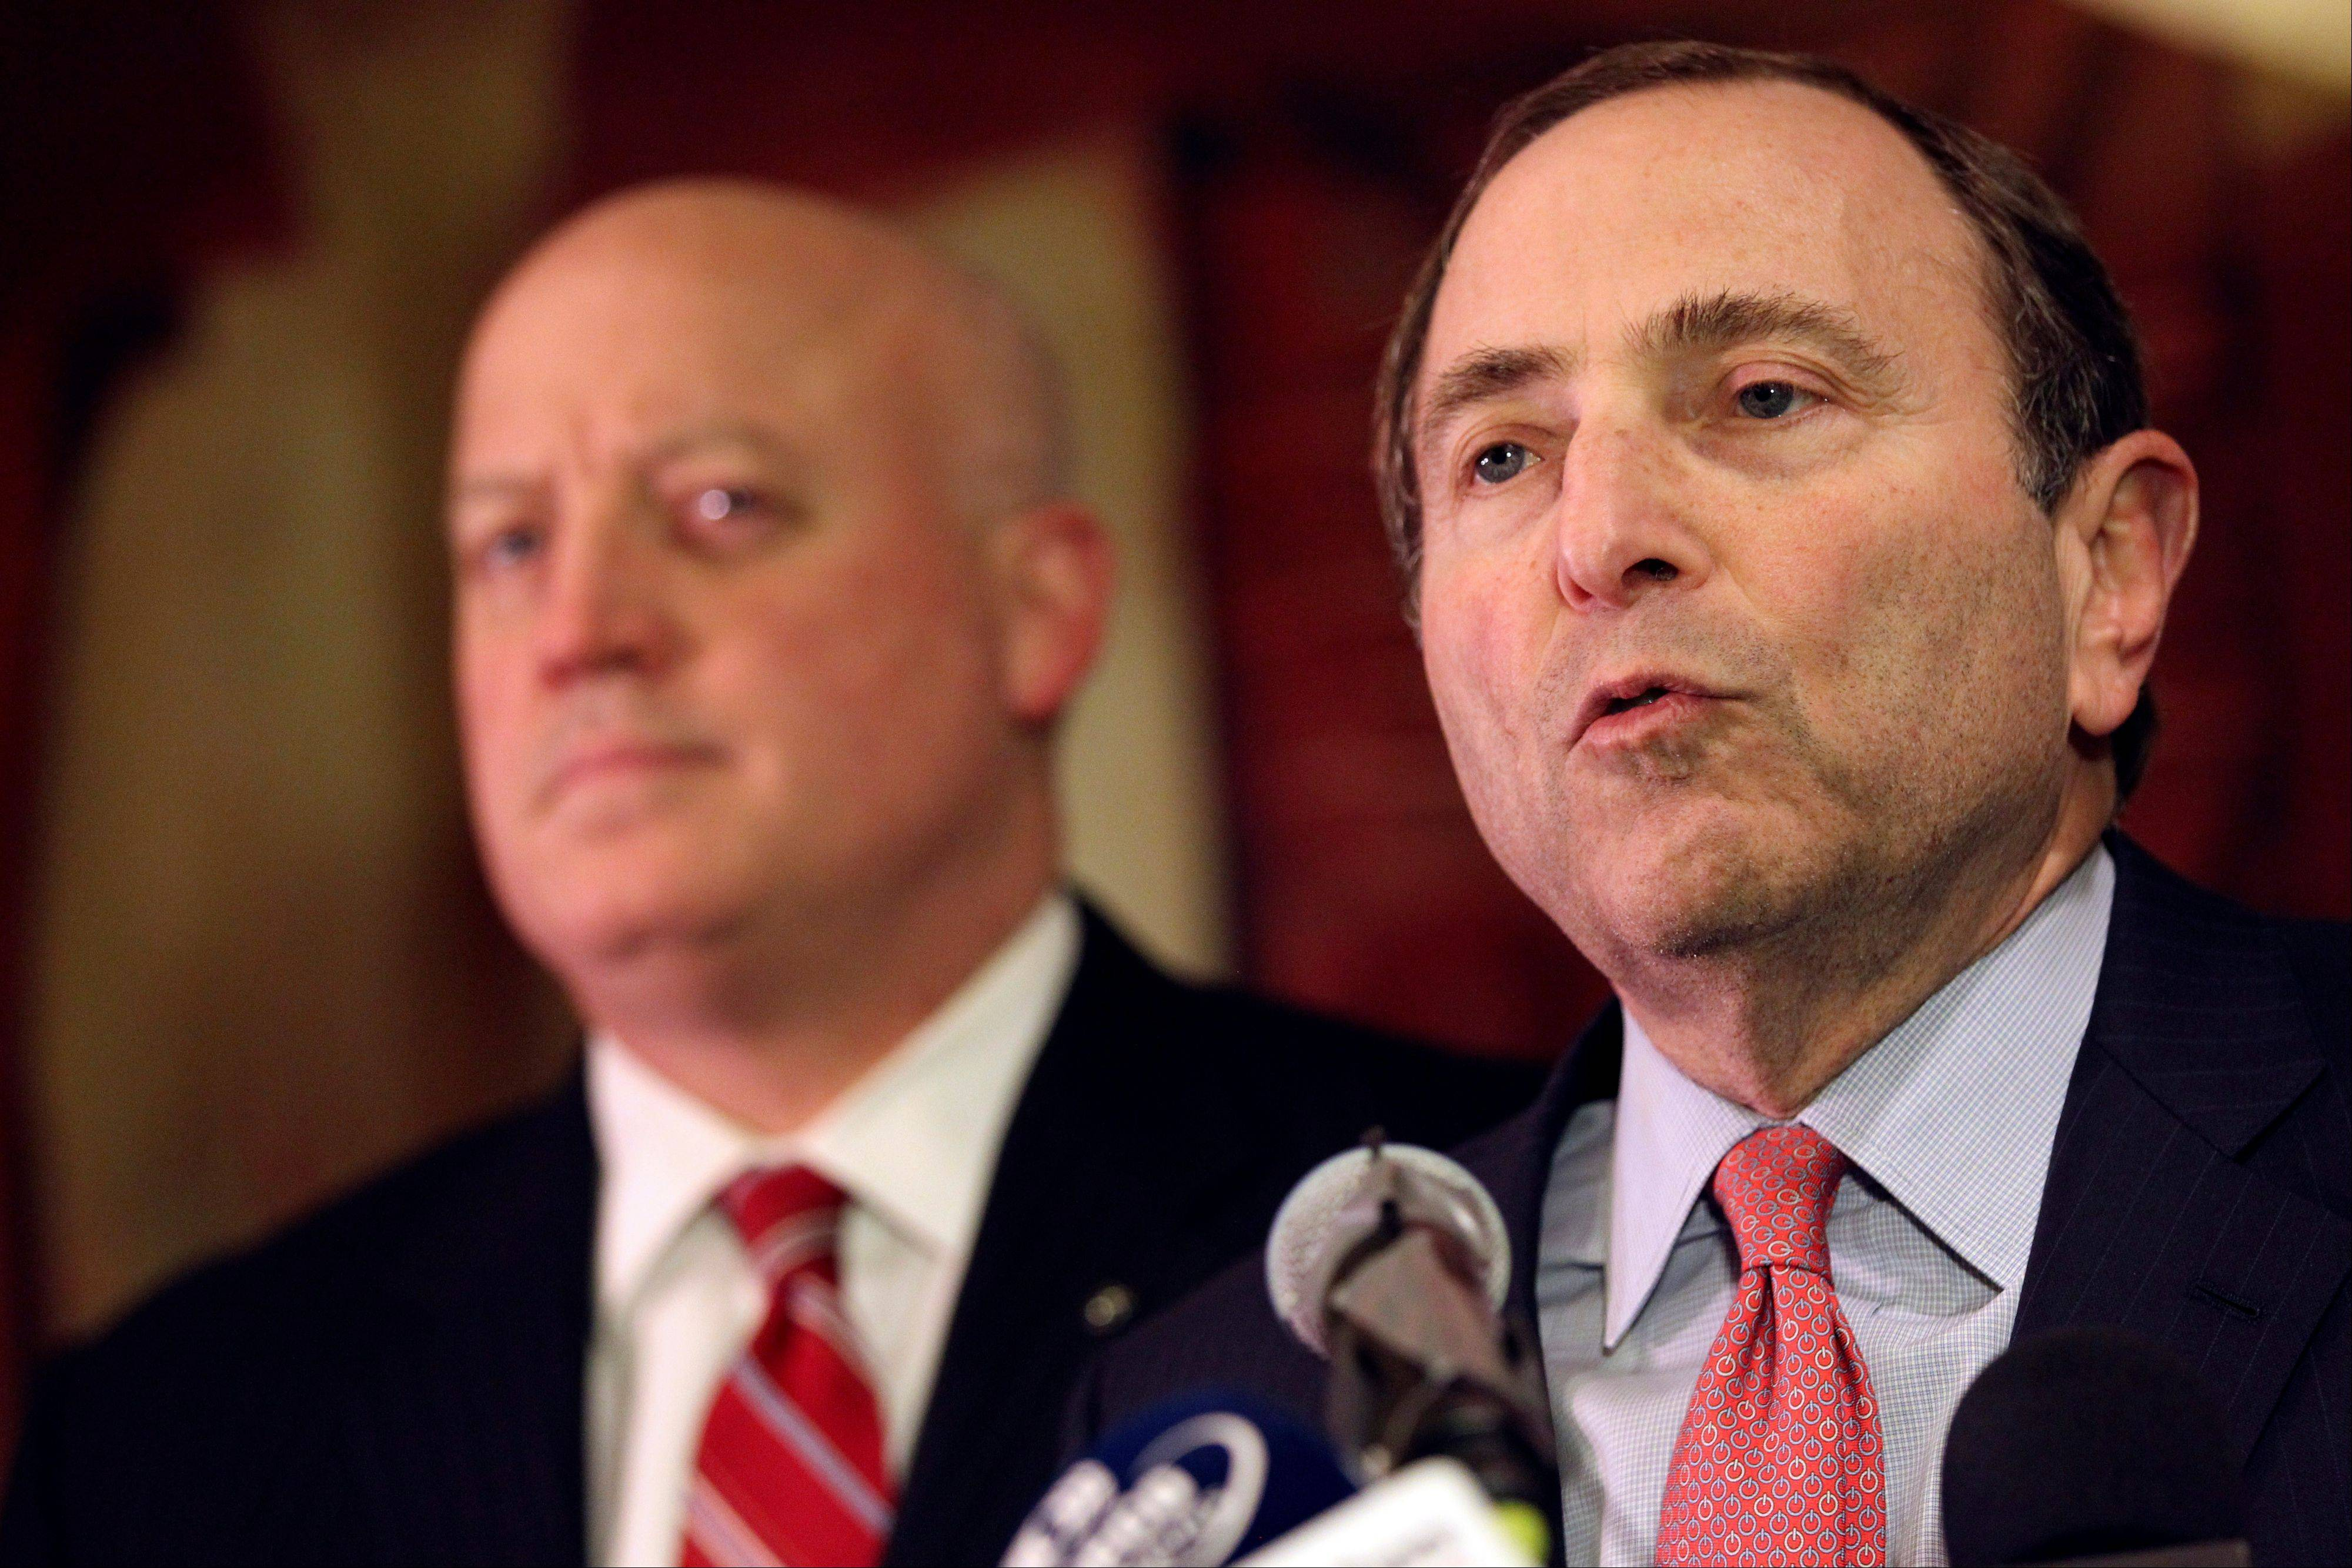 NHL Commissioner Gary Bettman, right, and deputy commissioner Bill Daly speak to reporters last Thursday in New York. The NHL has rejected the players' latest offer but negotiations are expected to resume Wednesday.